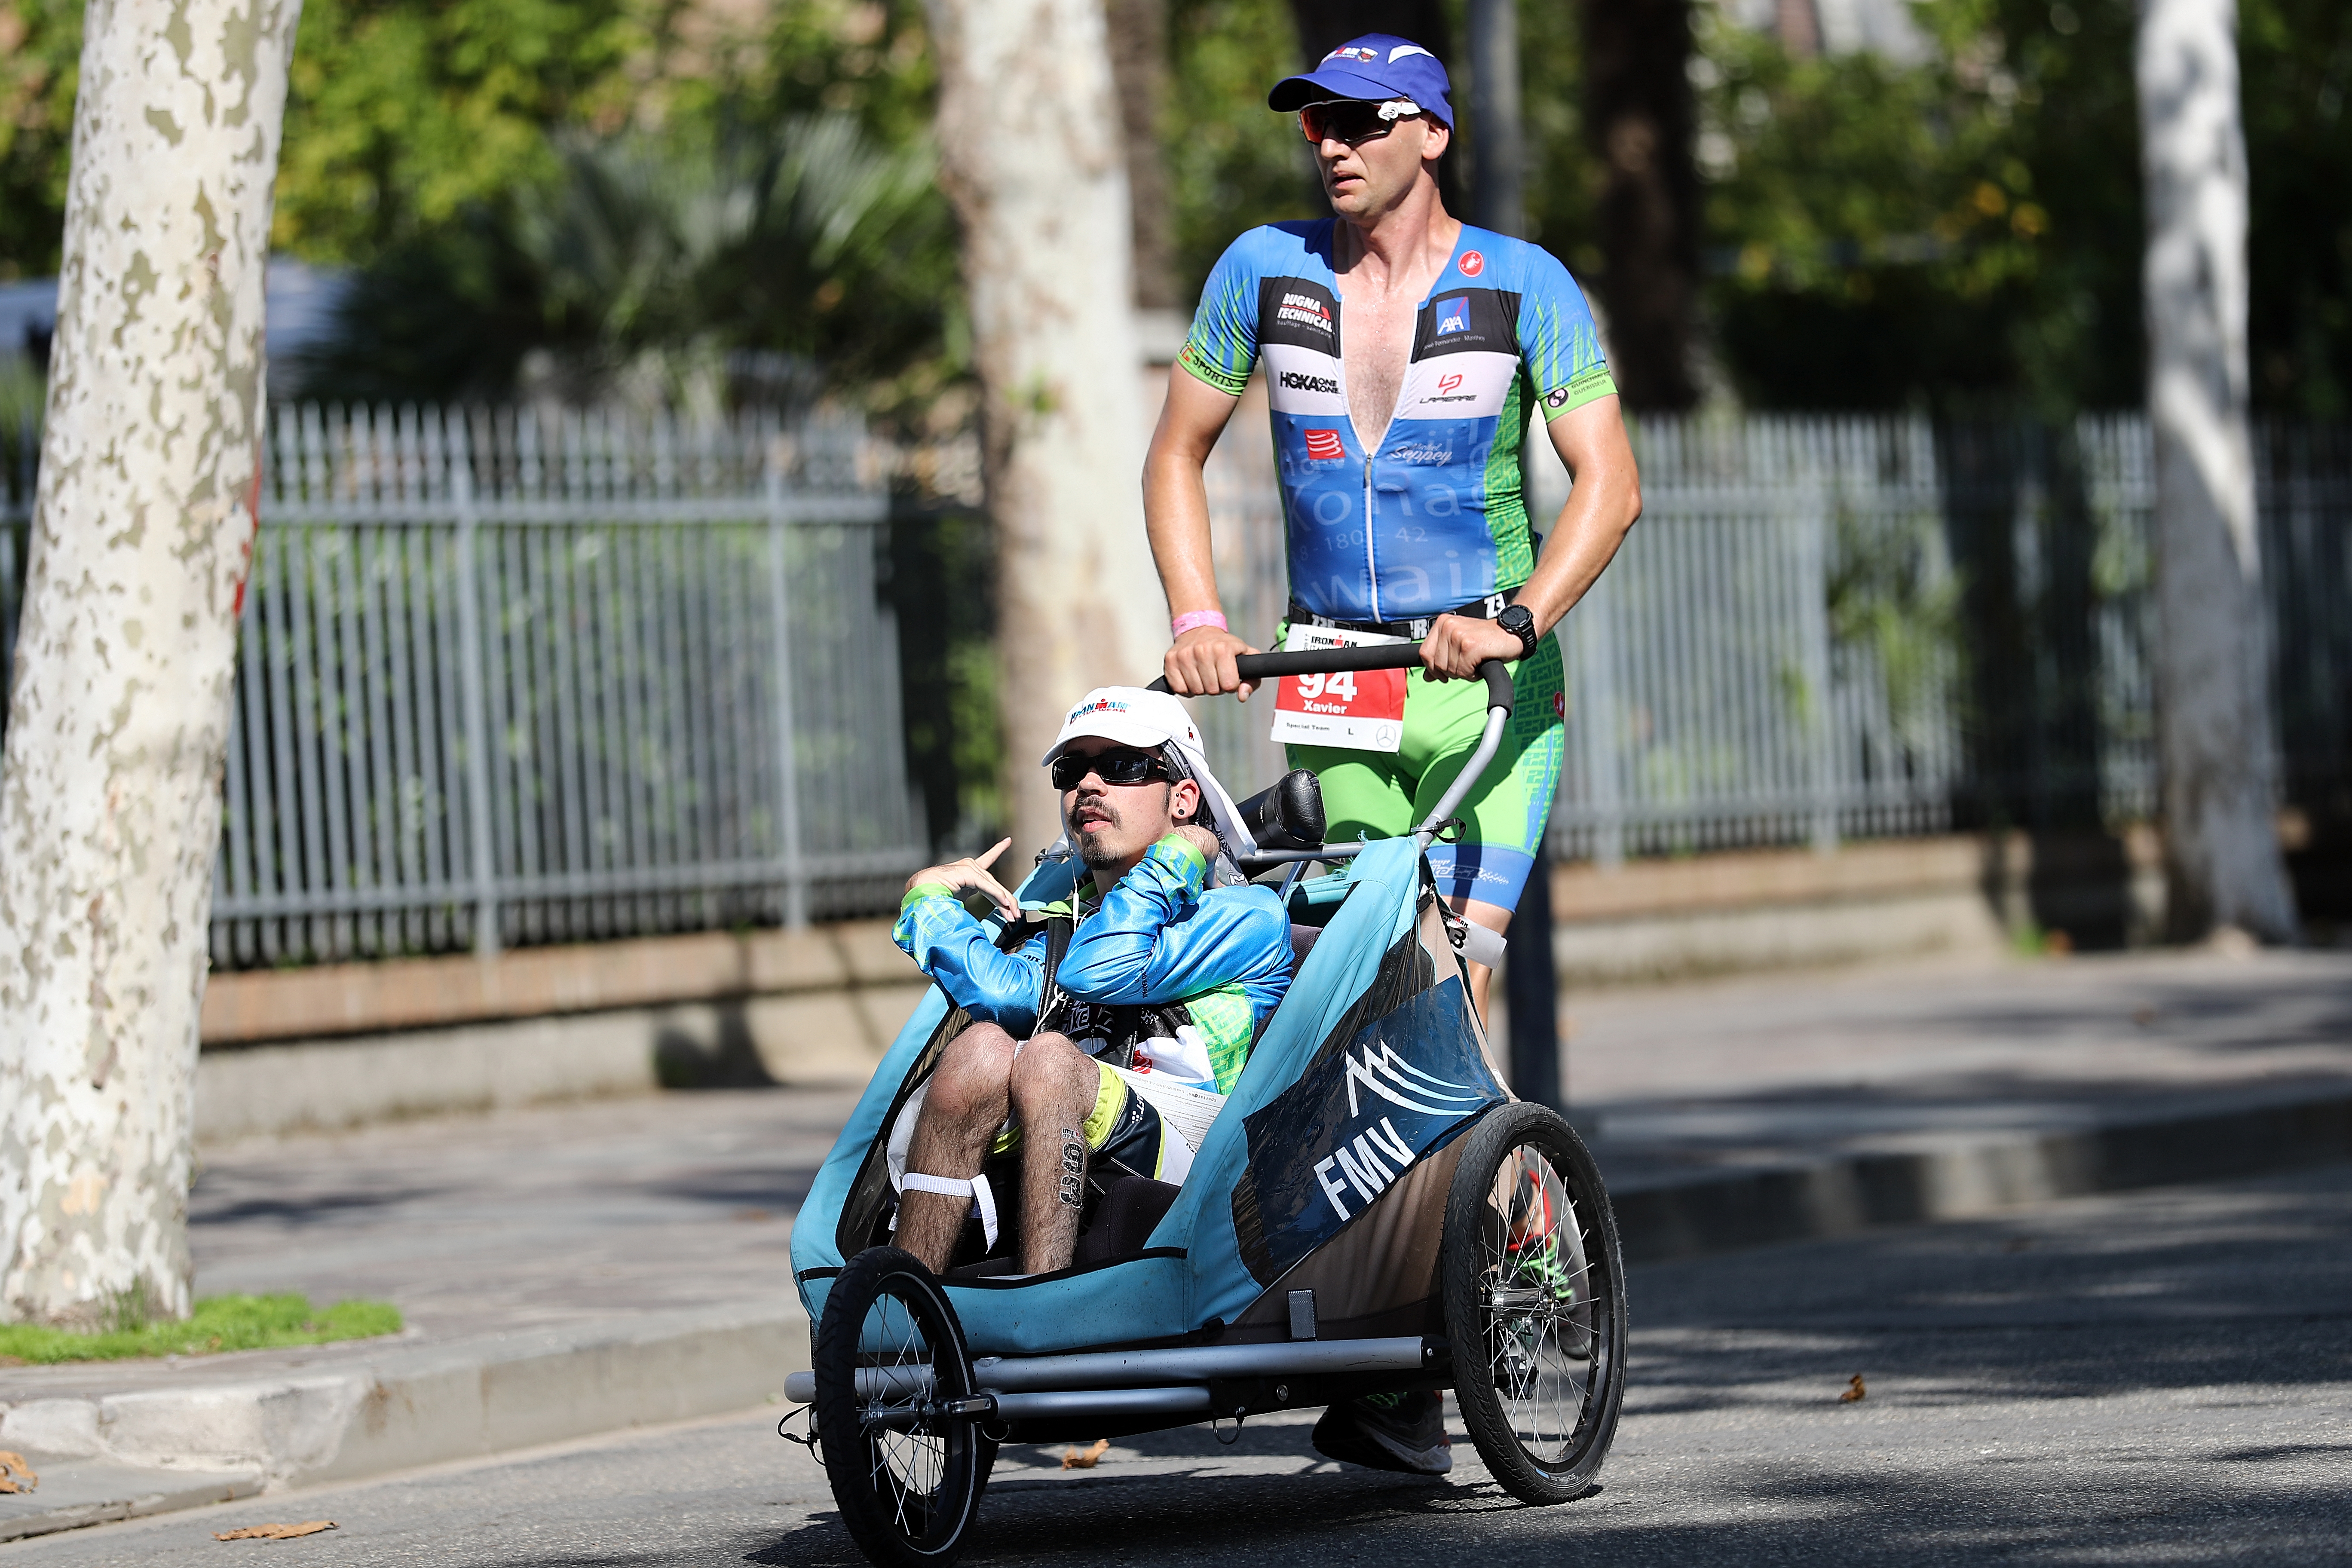 CERVIA, ITALY - SEPTEMBER 23: During IRONMAN Italy Emilia Romagna on September 23, 2017 in Cervia, Italy. (Photo by Bryn Lennon/Getty Images for IRONMAN)